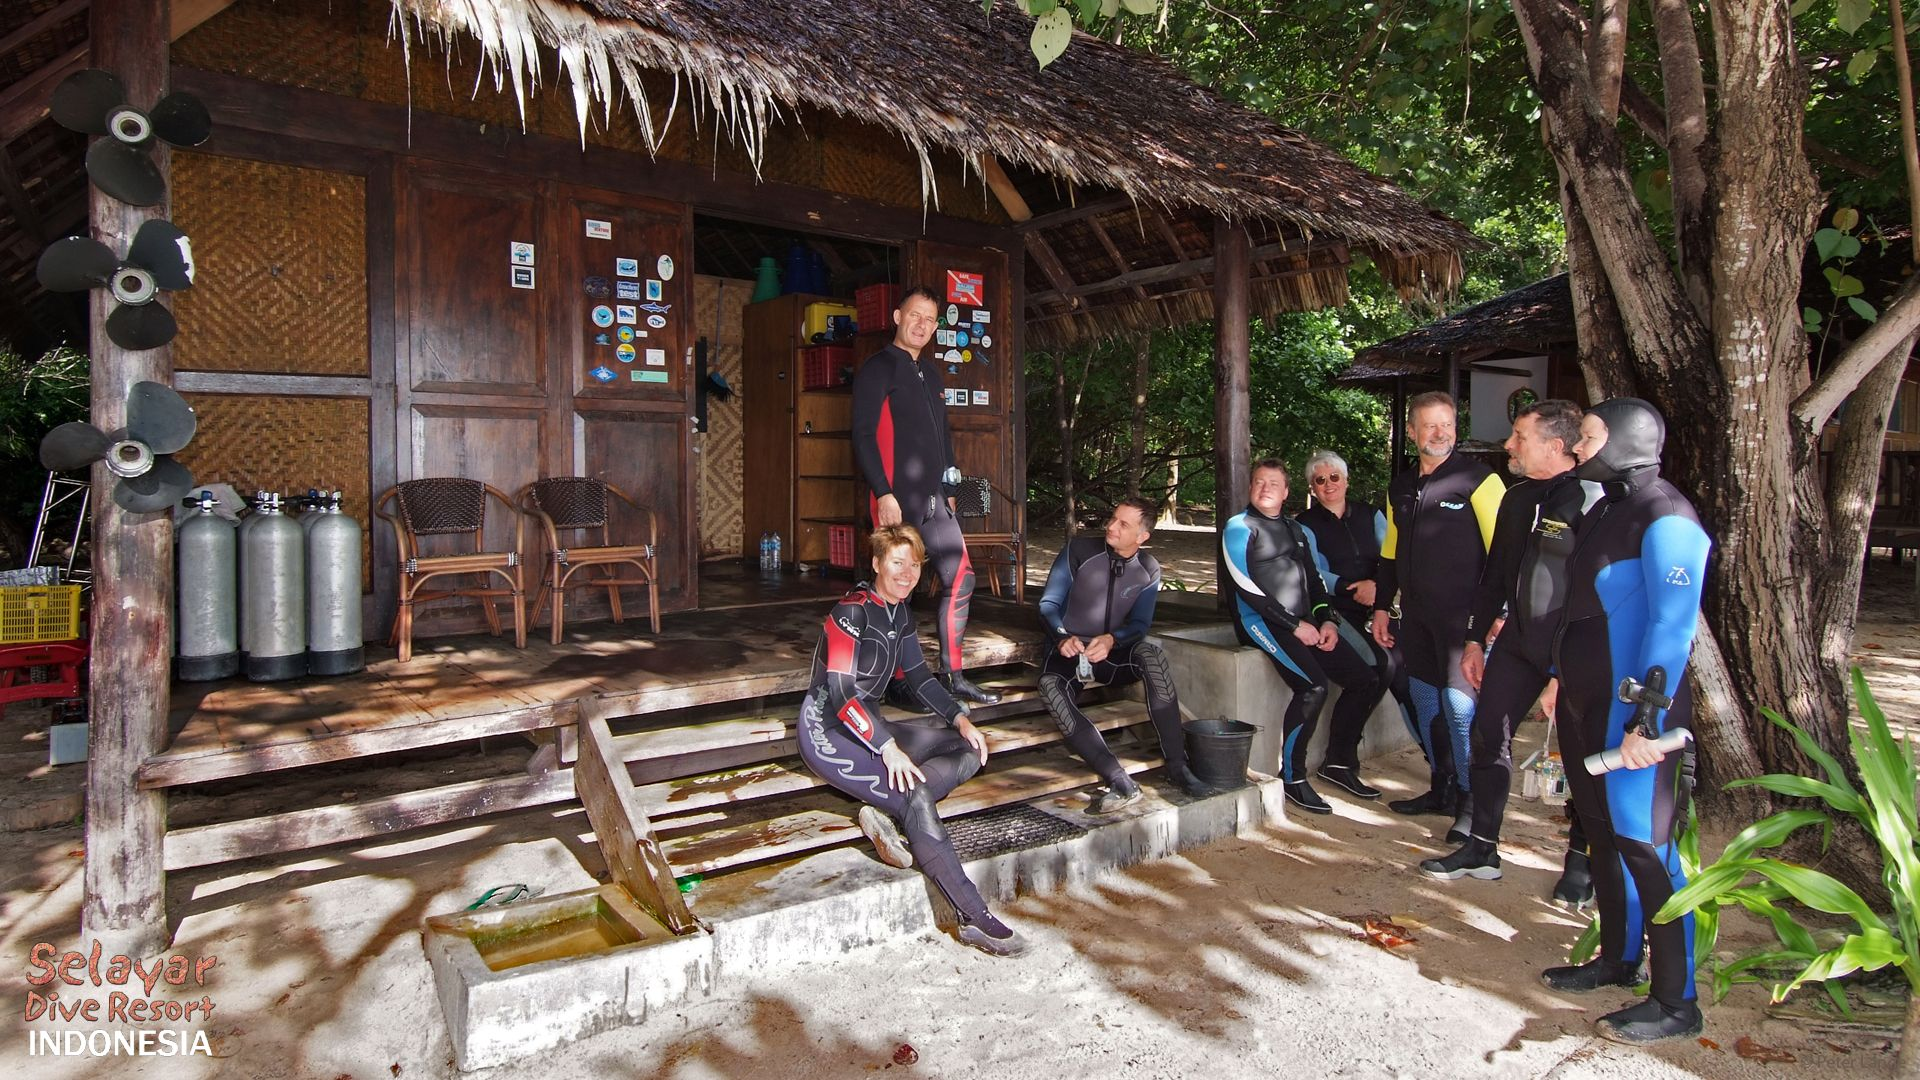 Dive Center Sulawesi